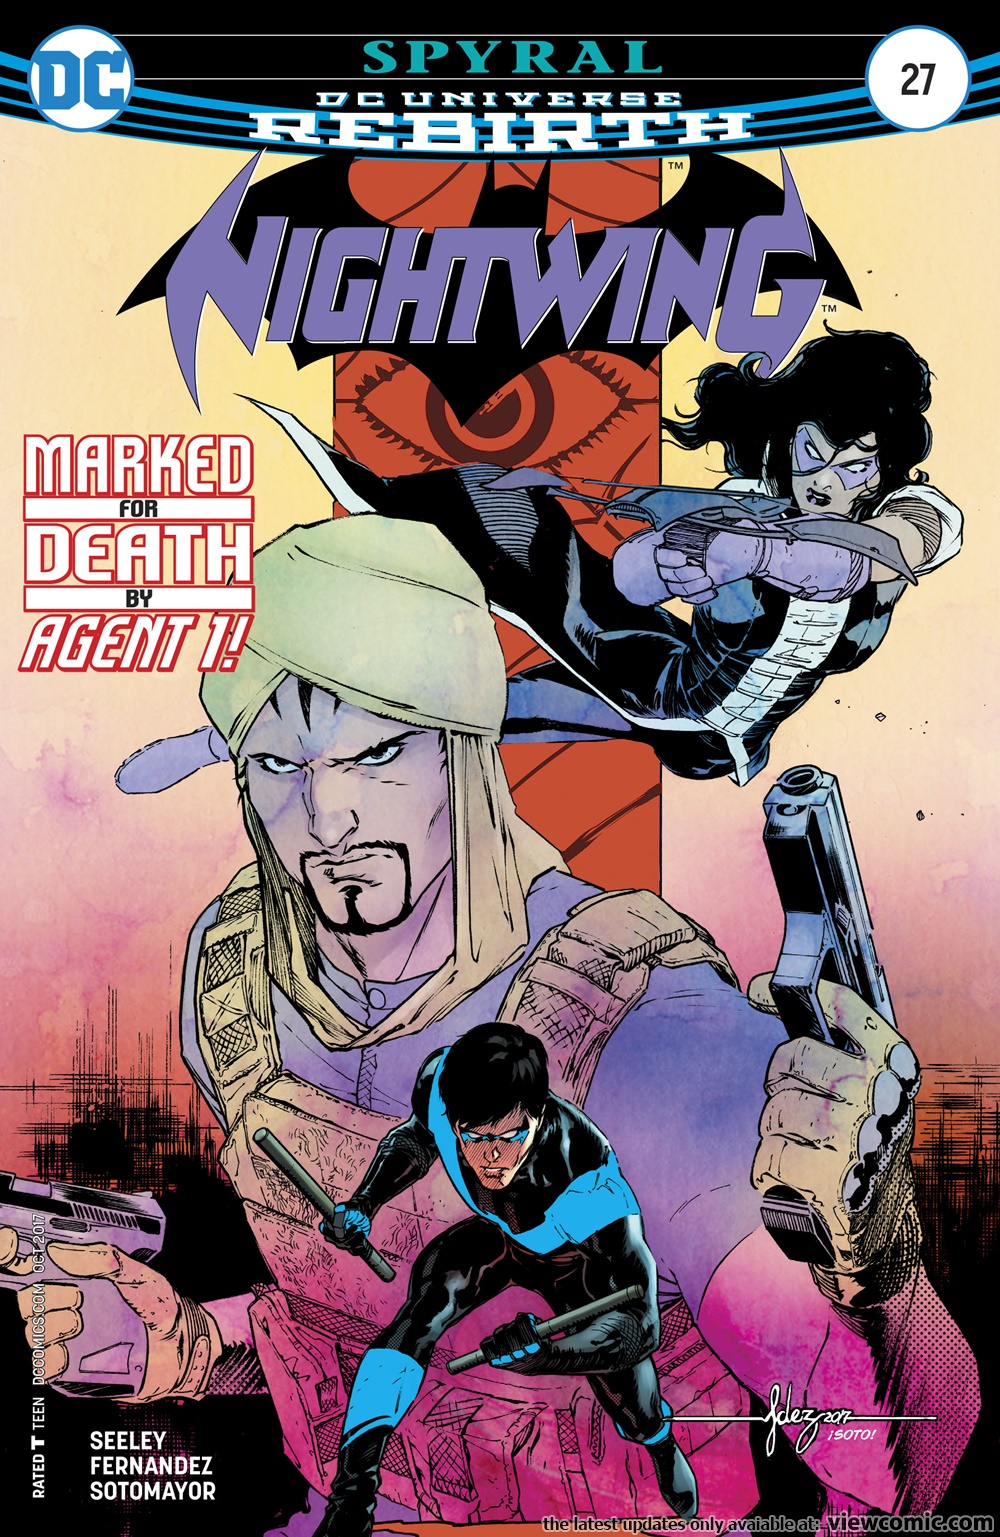 Nightwing v4 027 (2017)  | Vietcomic.net reading comics online for free